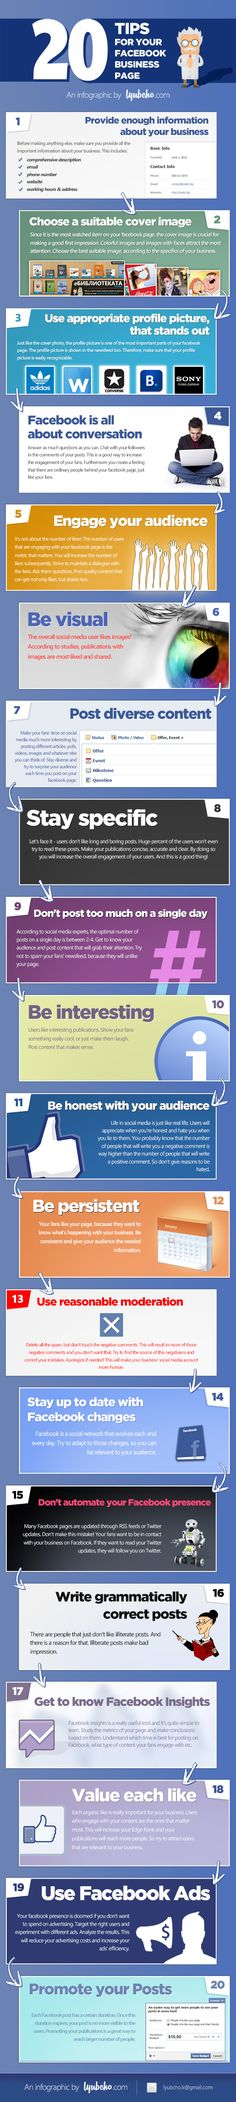 20 Helpful Tips For Your Facebook Business Page #facebook #social